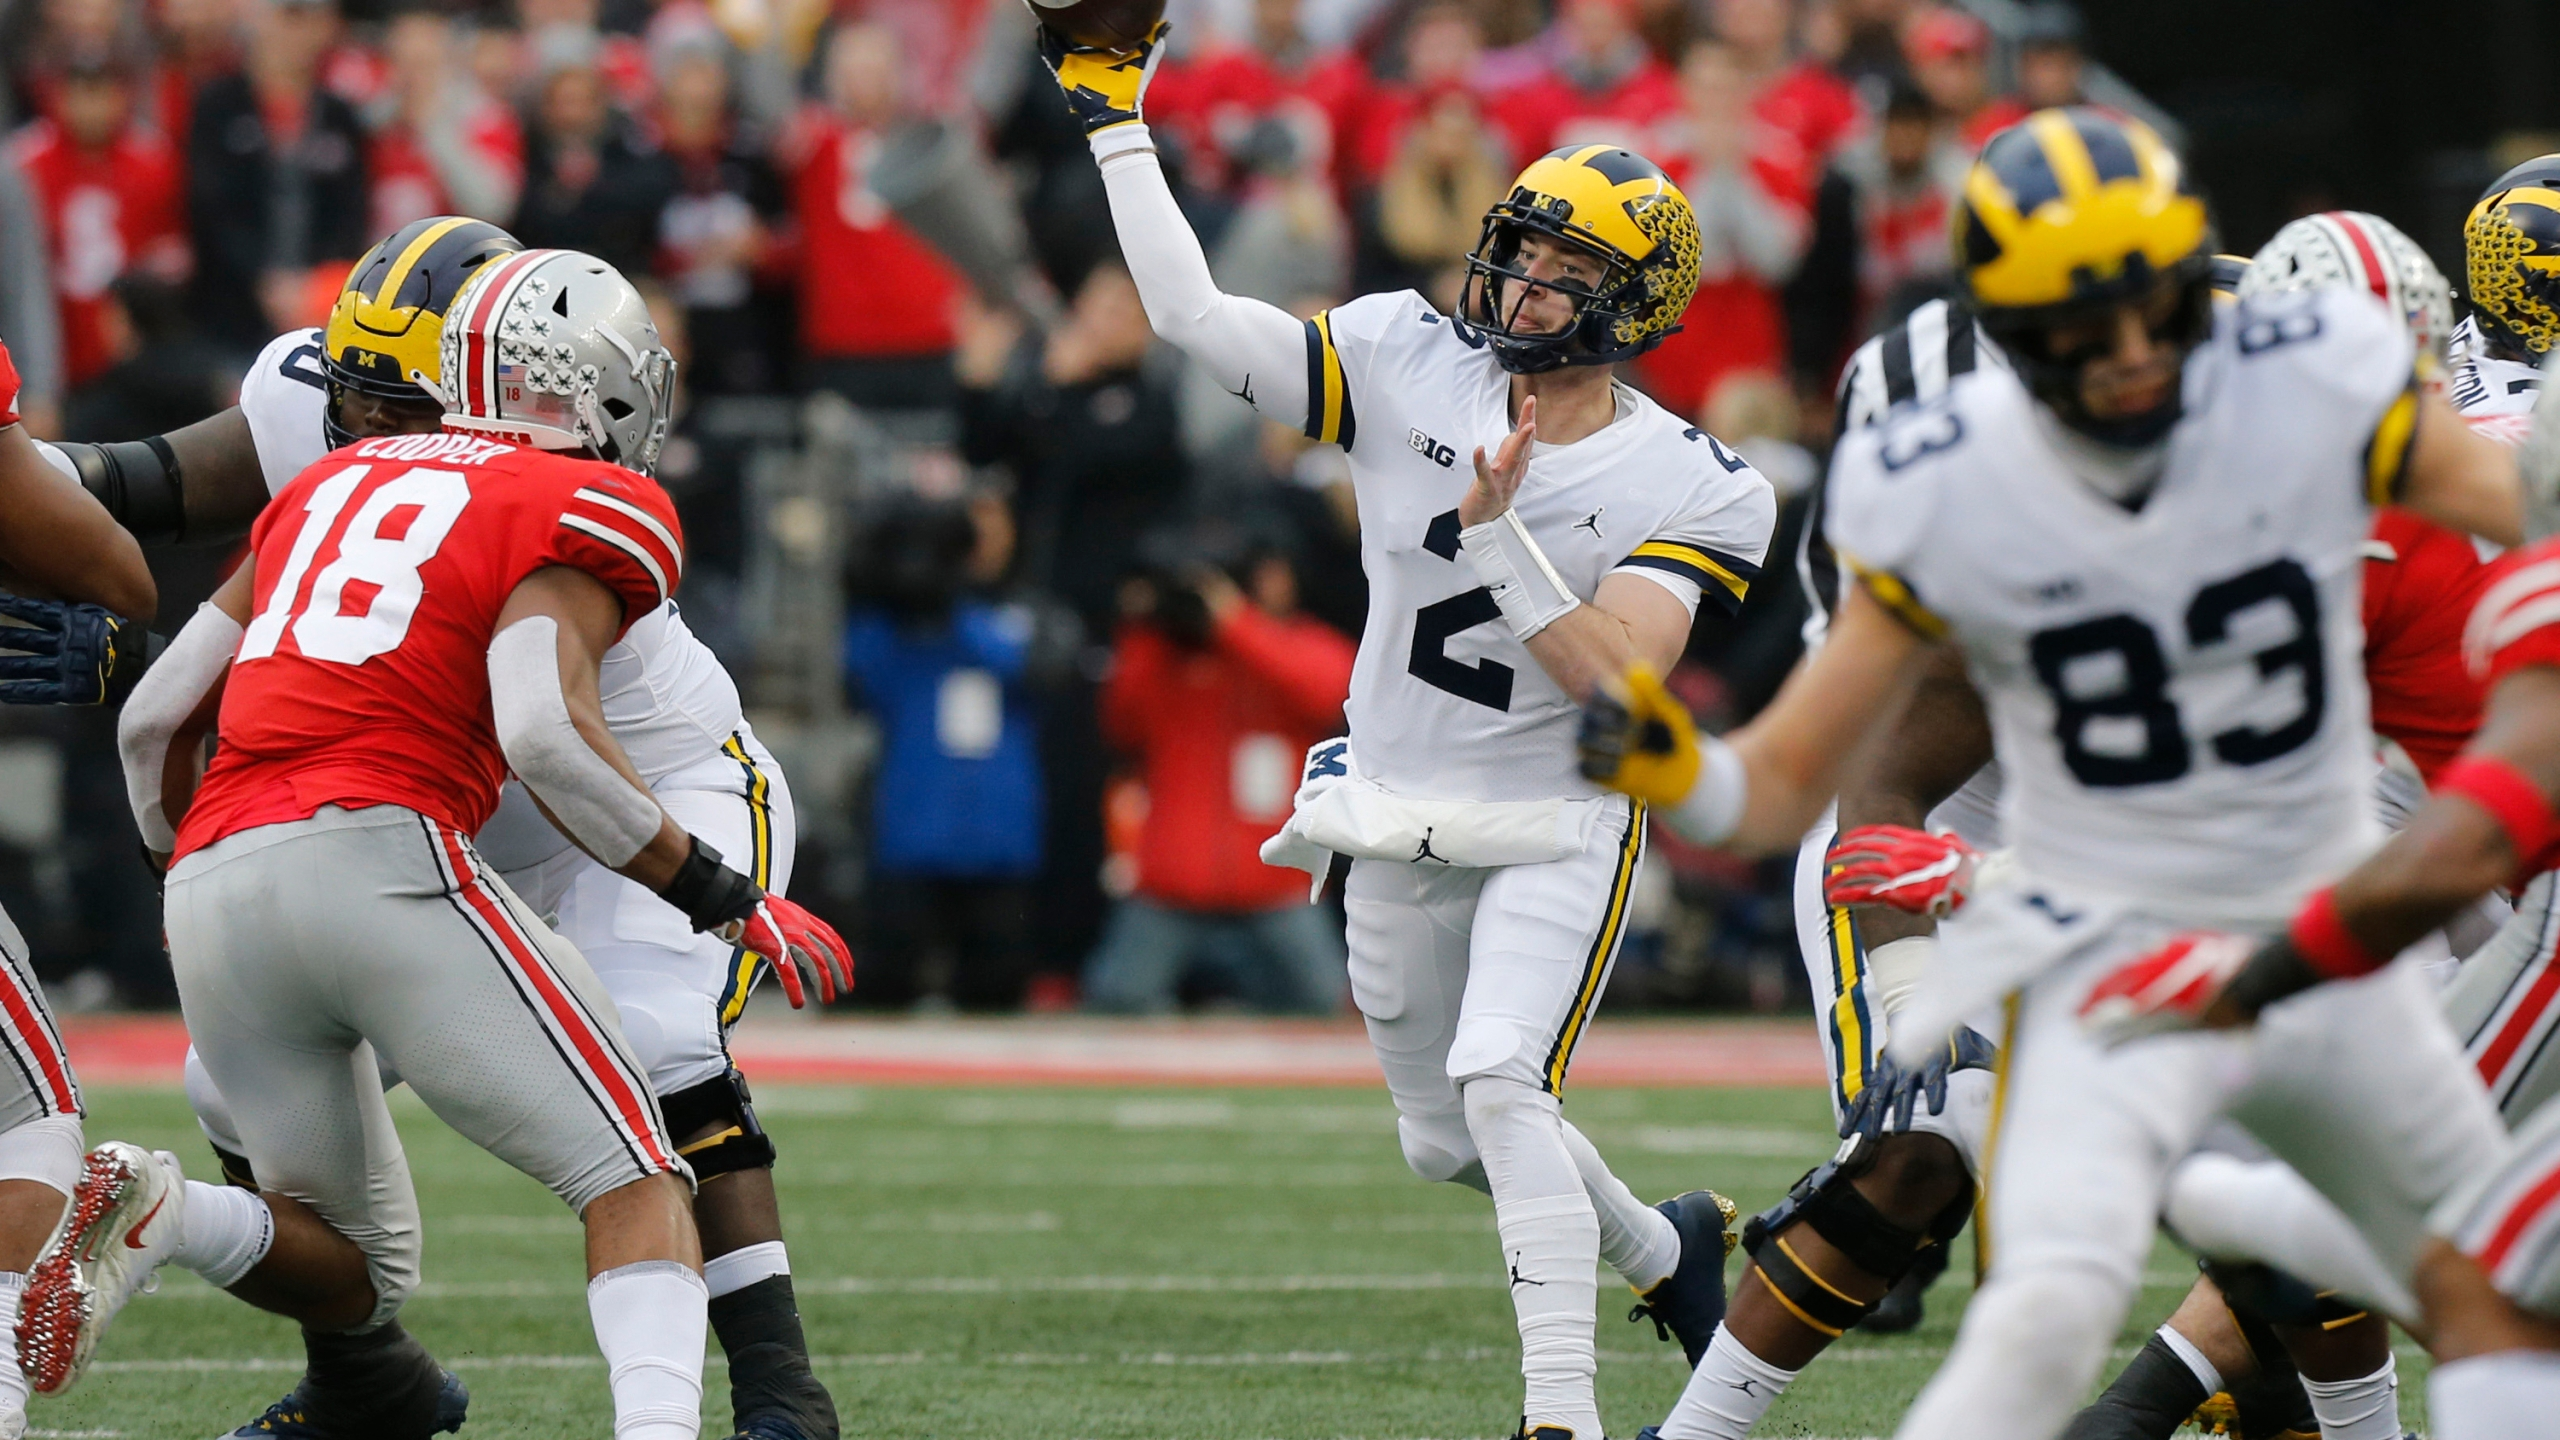 "In this Nov. 24, 2018, file photo, Michigan quarterback Shea Patterson throws a pass against Ohio State during an NCAA college football game in Columbus, Ohio. Magistrate Judge Norah McCann King moved a change of plea hearing from June 18 to July 1, 2020, for Daniel Rippy. Rippy is accused of making an ""electronic communication"" threat from California during this game between Ohio State and the University of Michigan threatening a shooting and vowing to hurt players on the football team. (AP Photo/Jay LaPrete)"